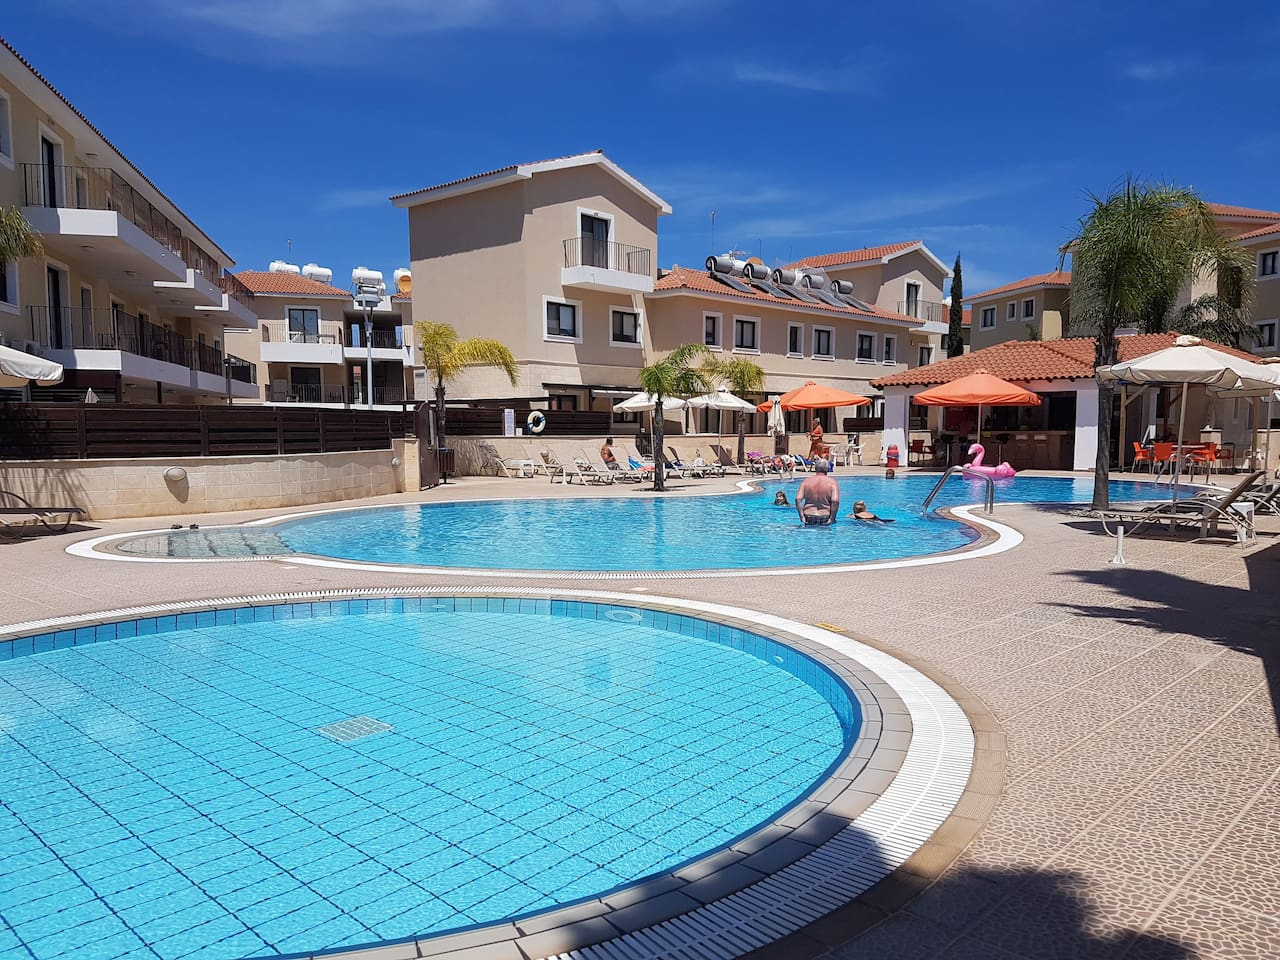 Crystal clear swimming pool, sunbeds and umbrellas are provided free of charge